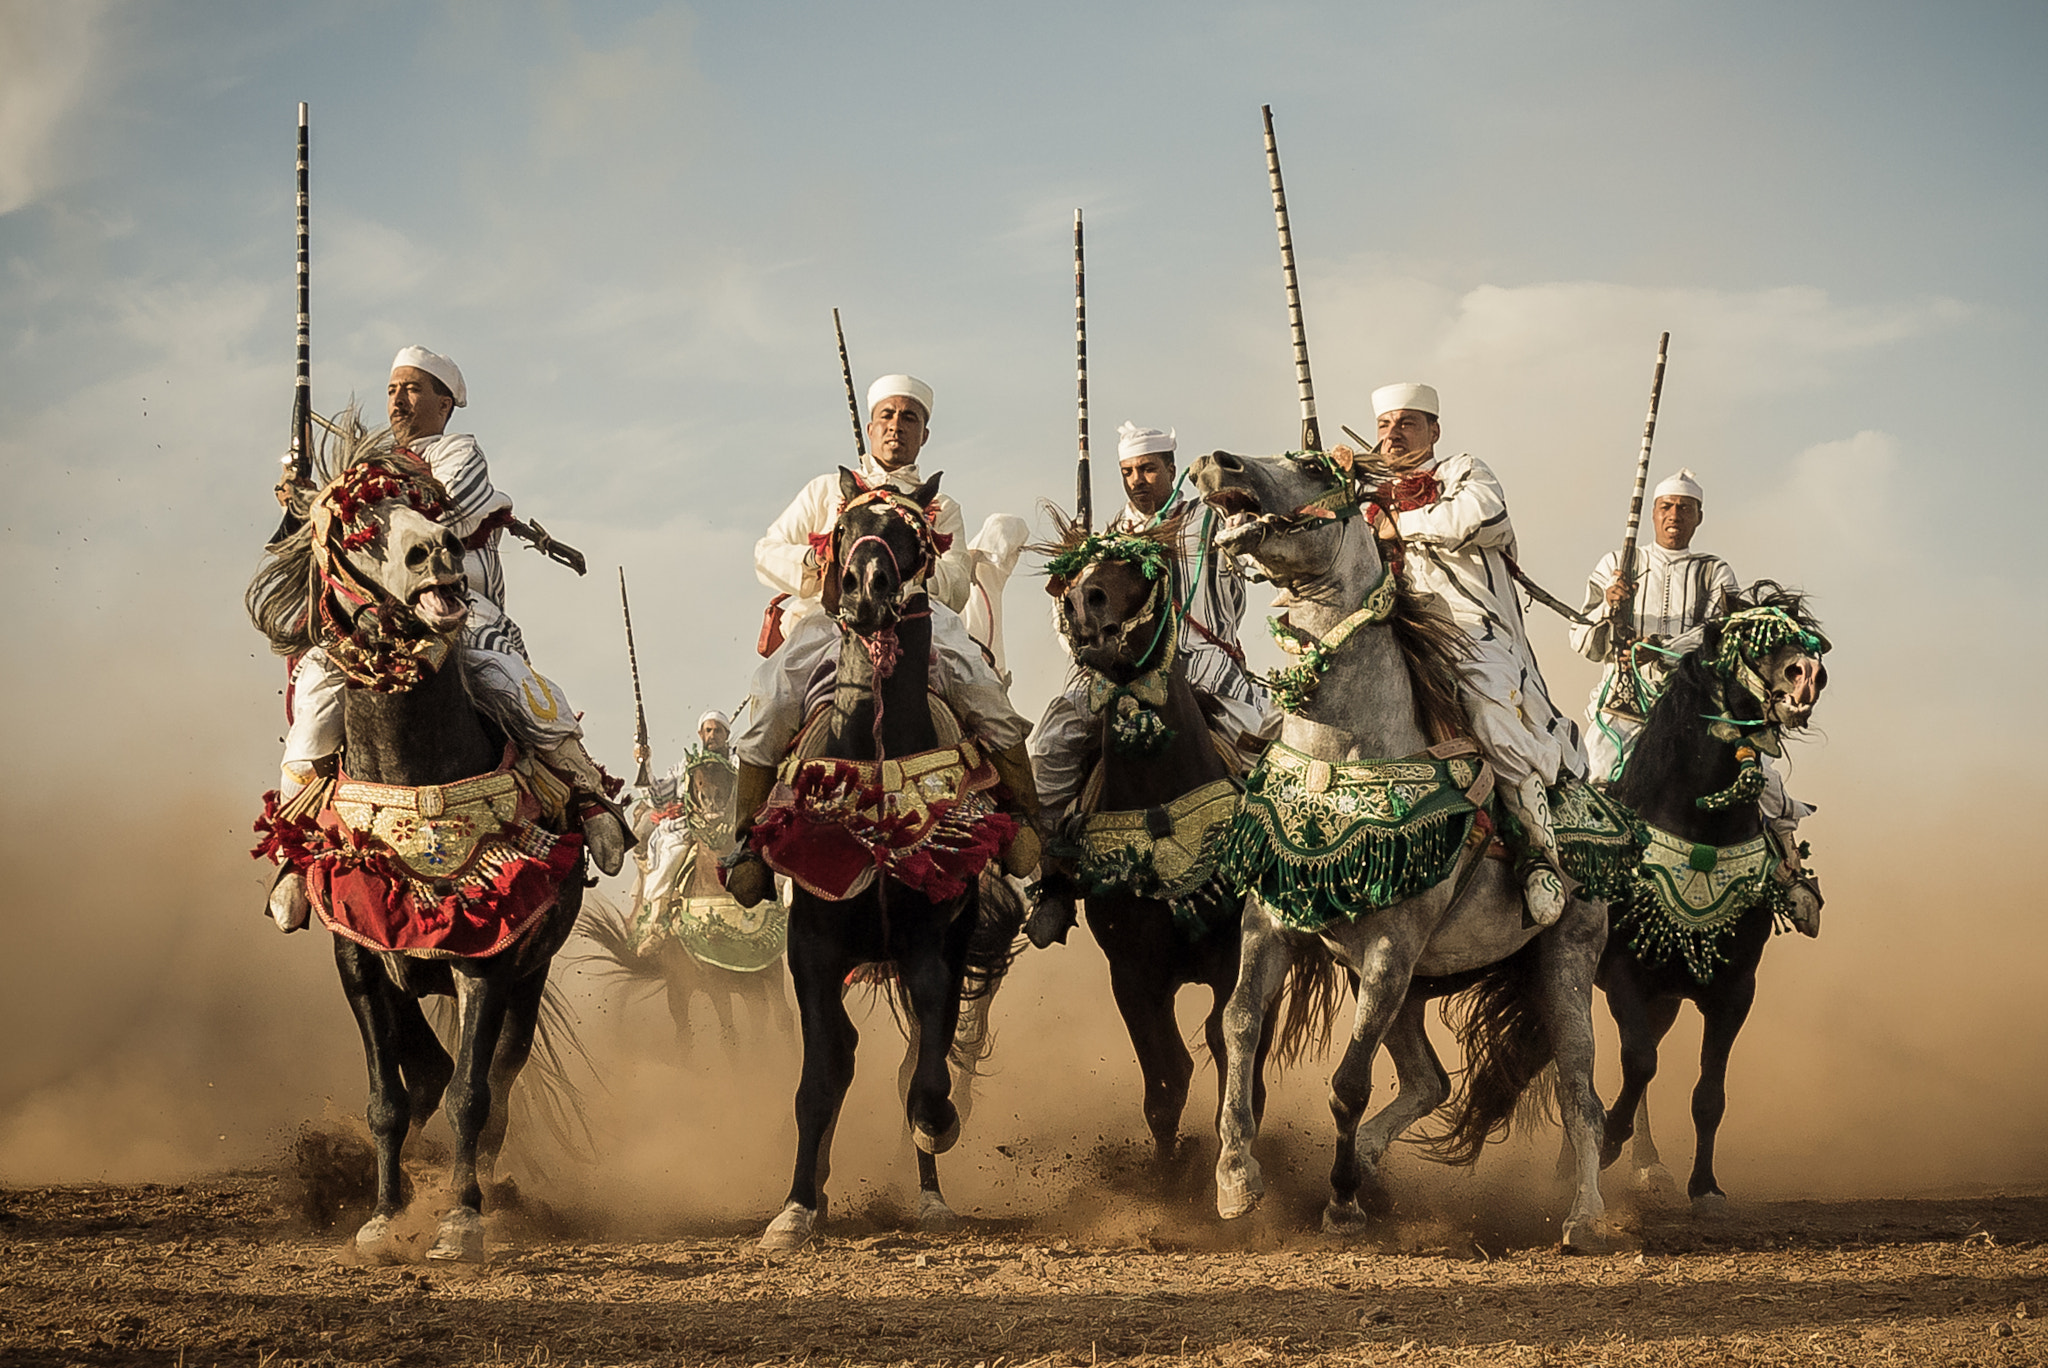 Photograph Fantasia Riders by Amine Fassi on 500px